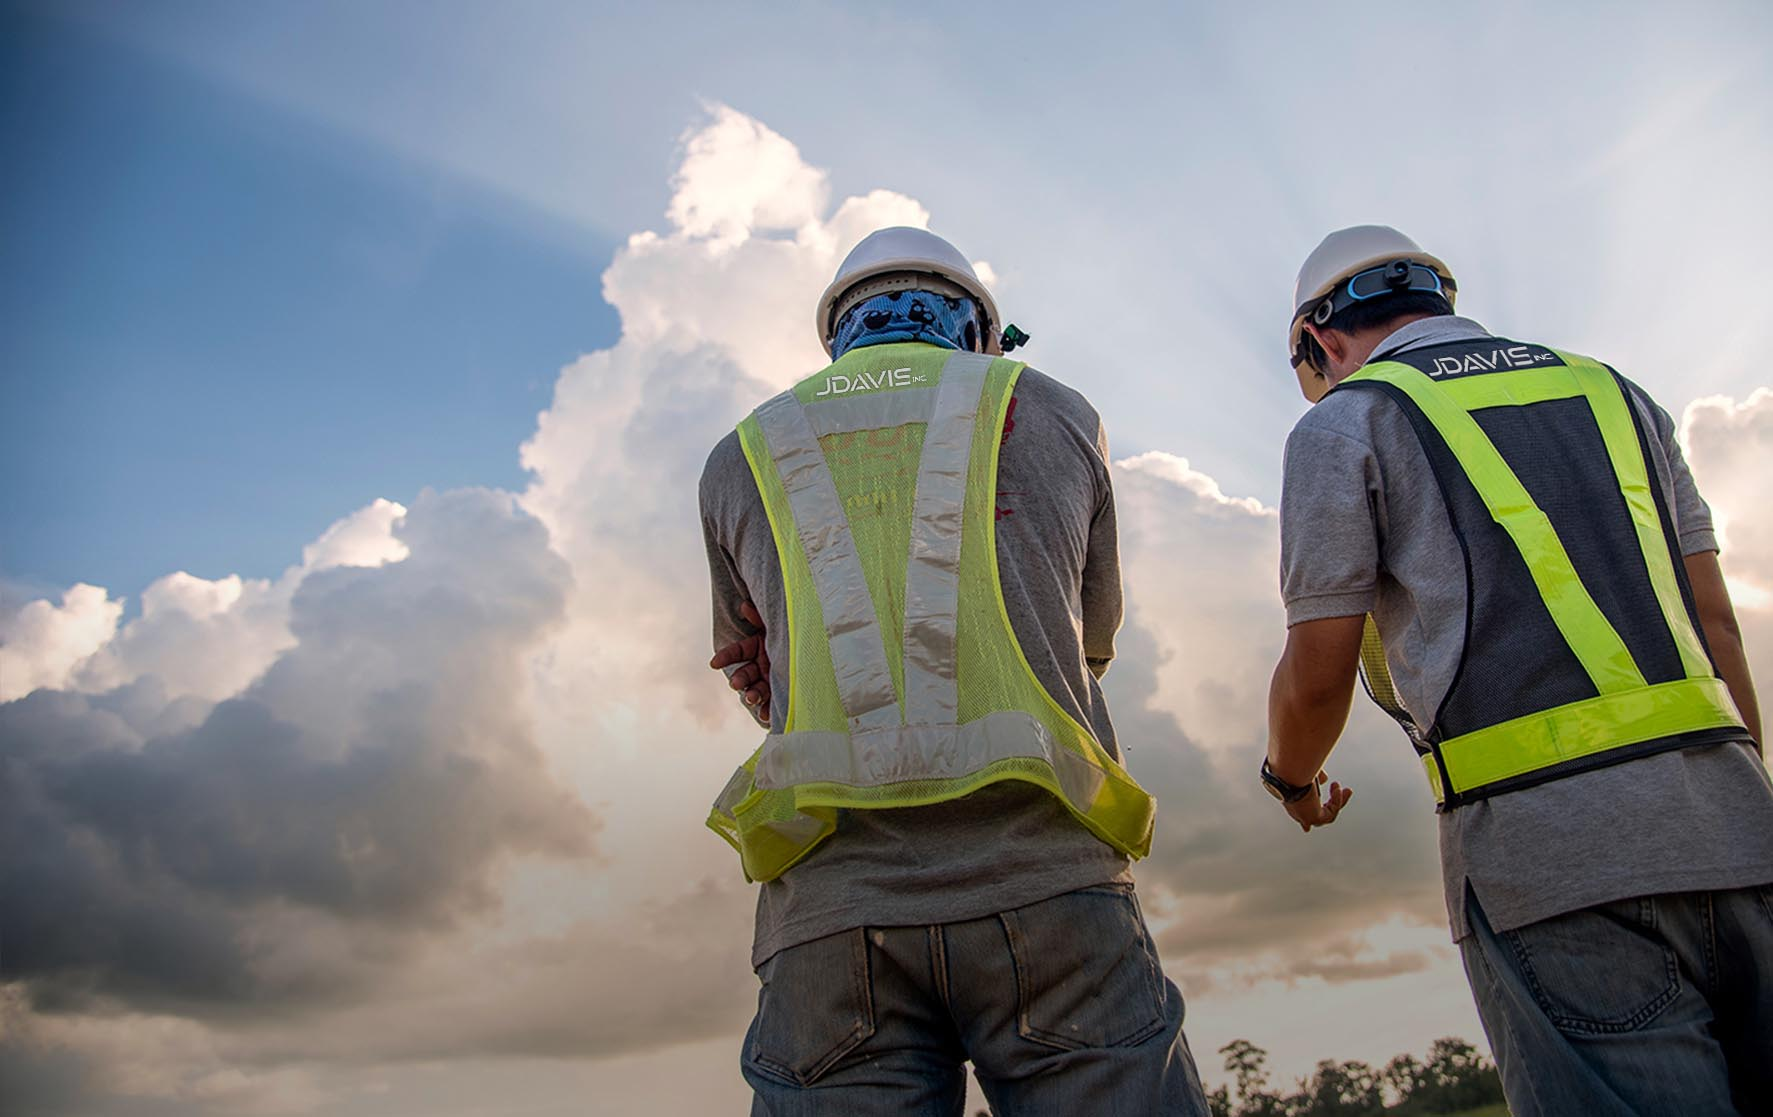 heroic angle photo of two construction workers with dramatic sky